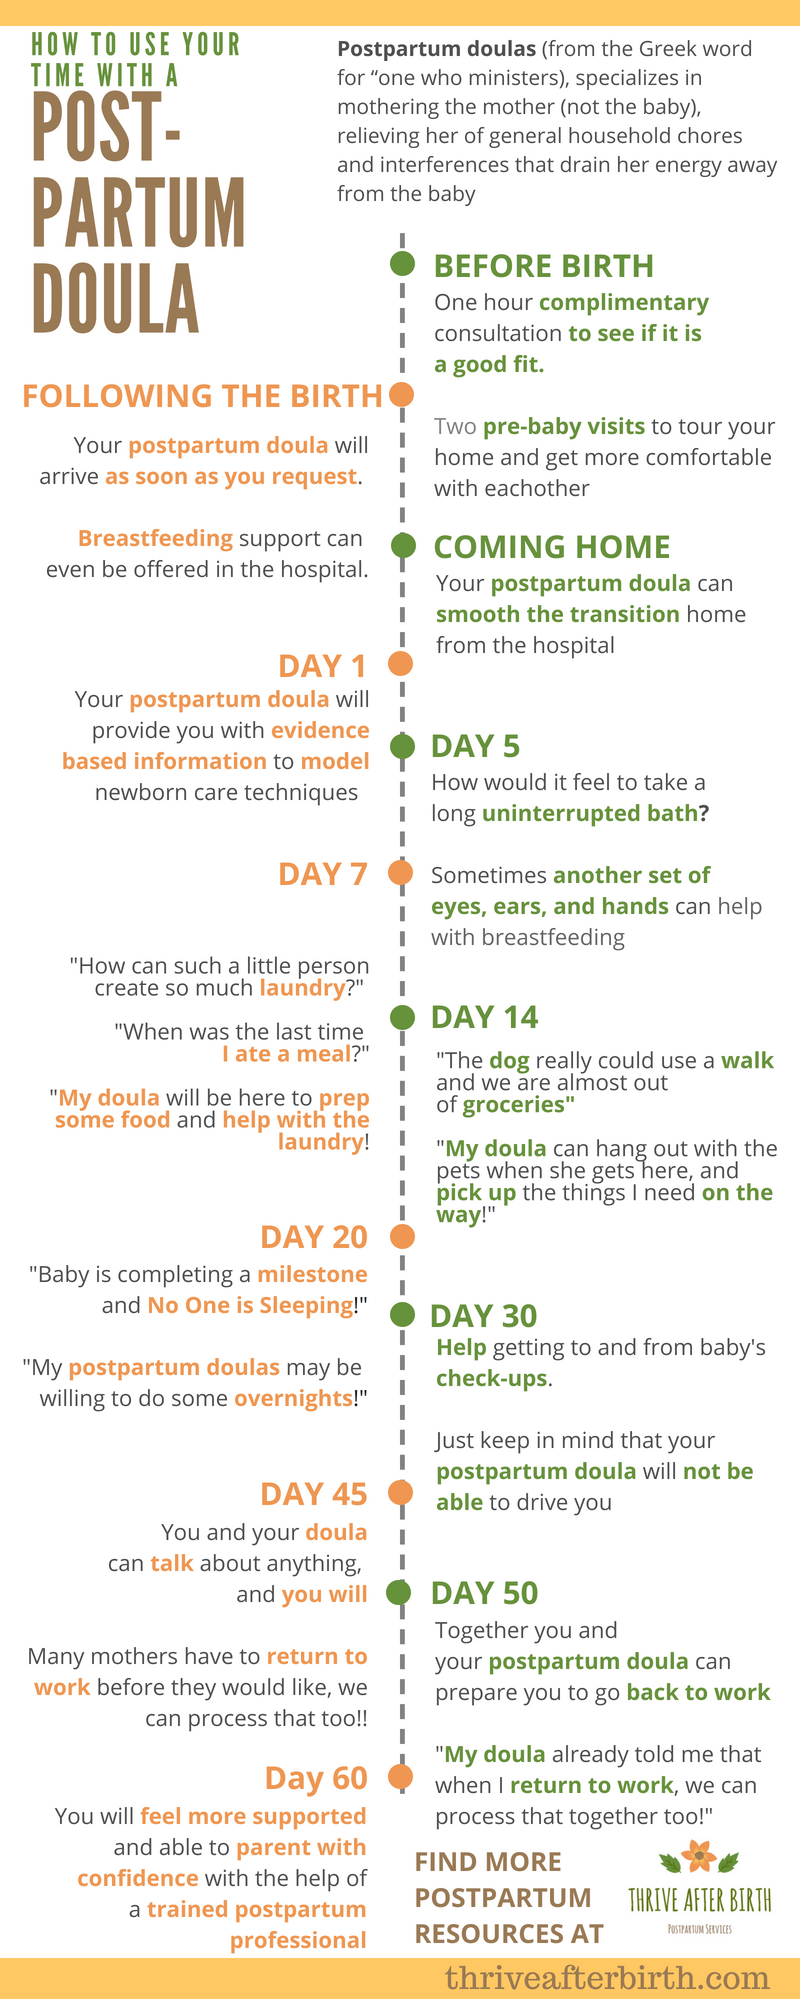 How to use your time with a postpartum doula